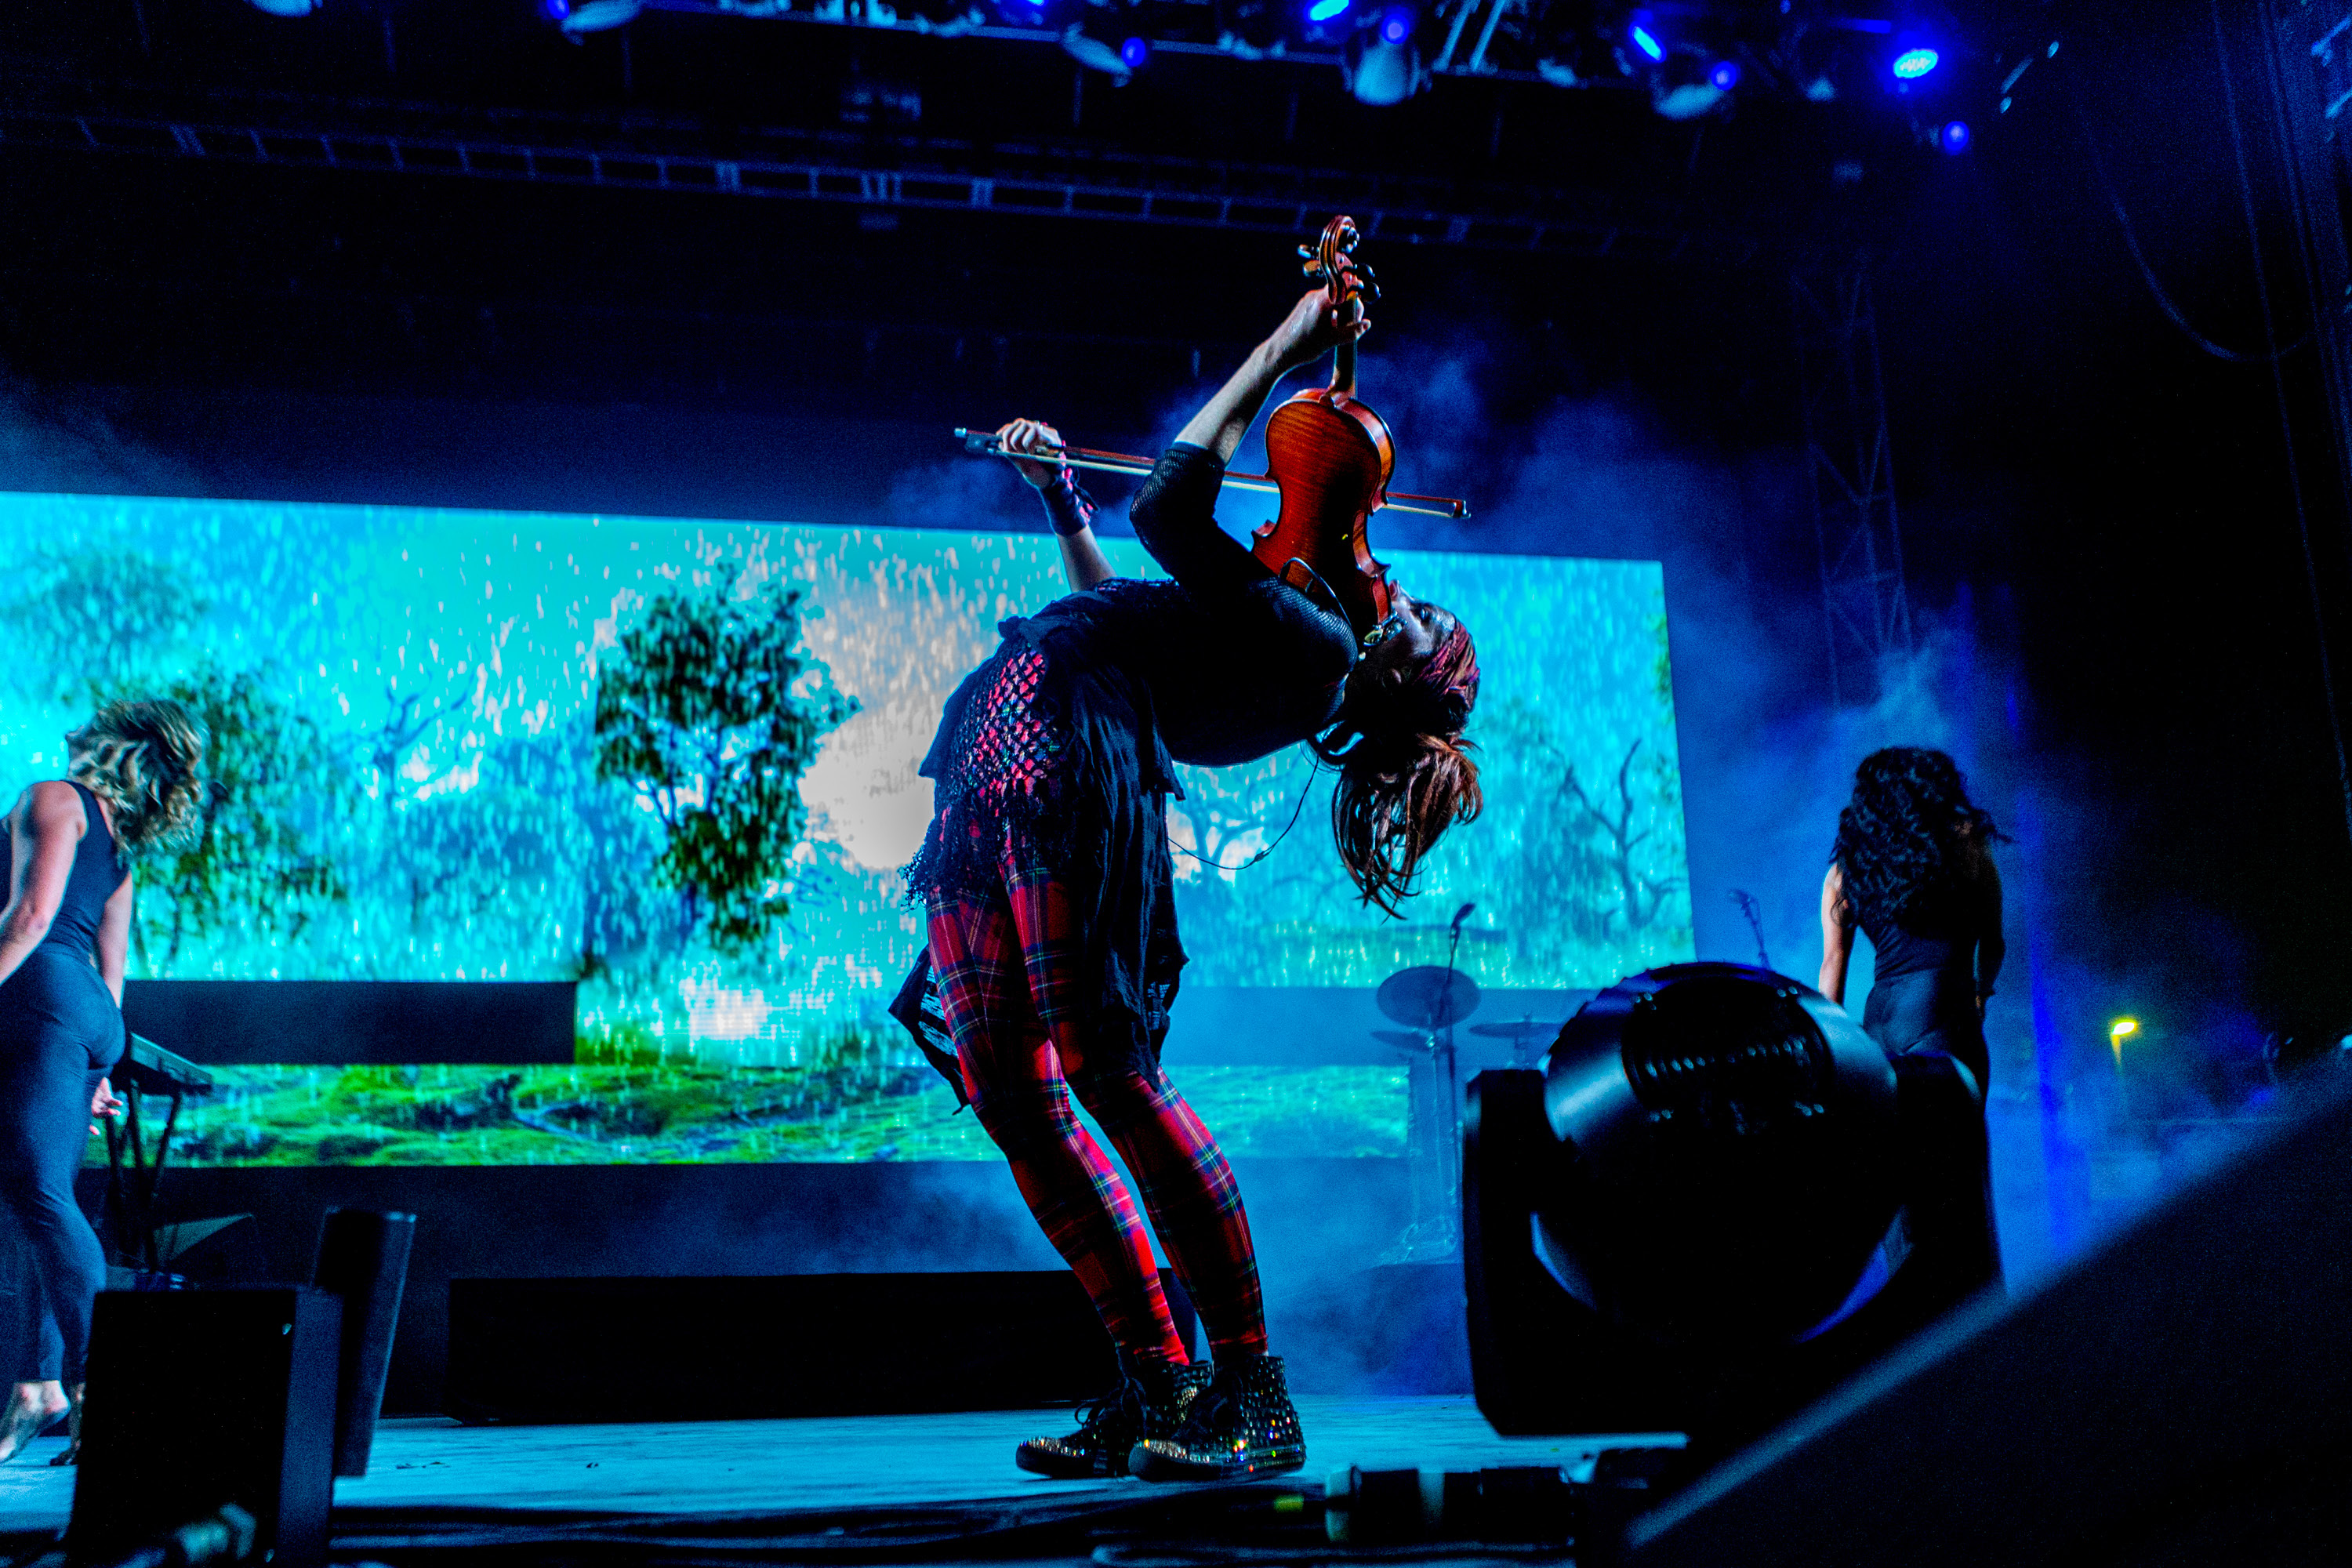 Lindsey Stirling performs during the Life is Beautiful festival on Friday, September 25, 2015 in Las Vegas. (Photo by Paul A. Hebert/Invision/AP)